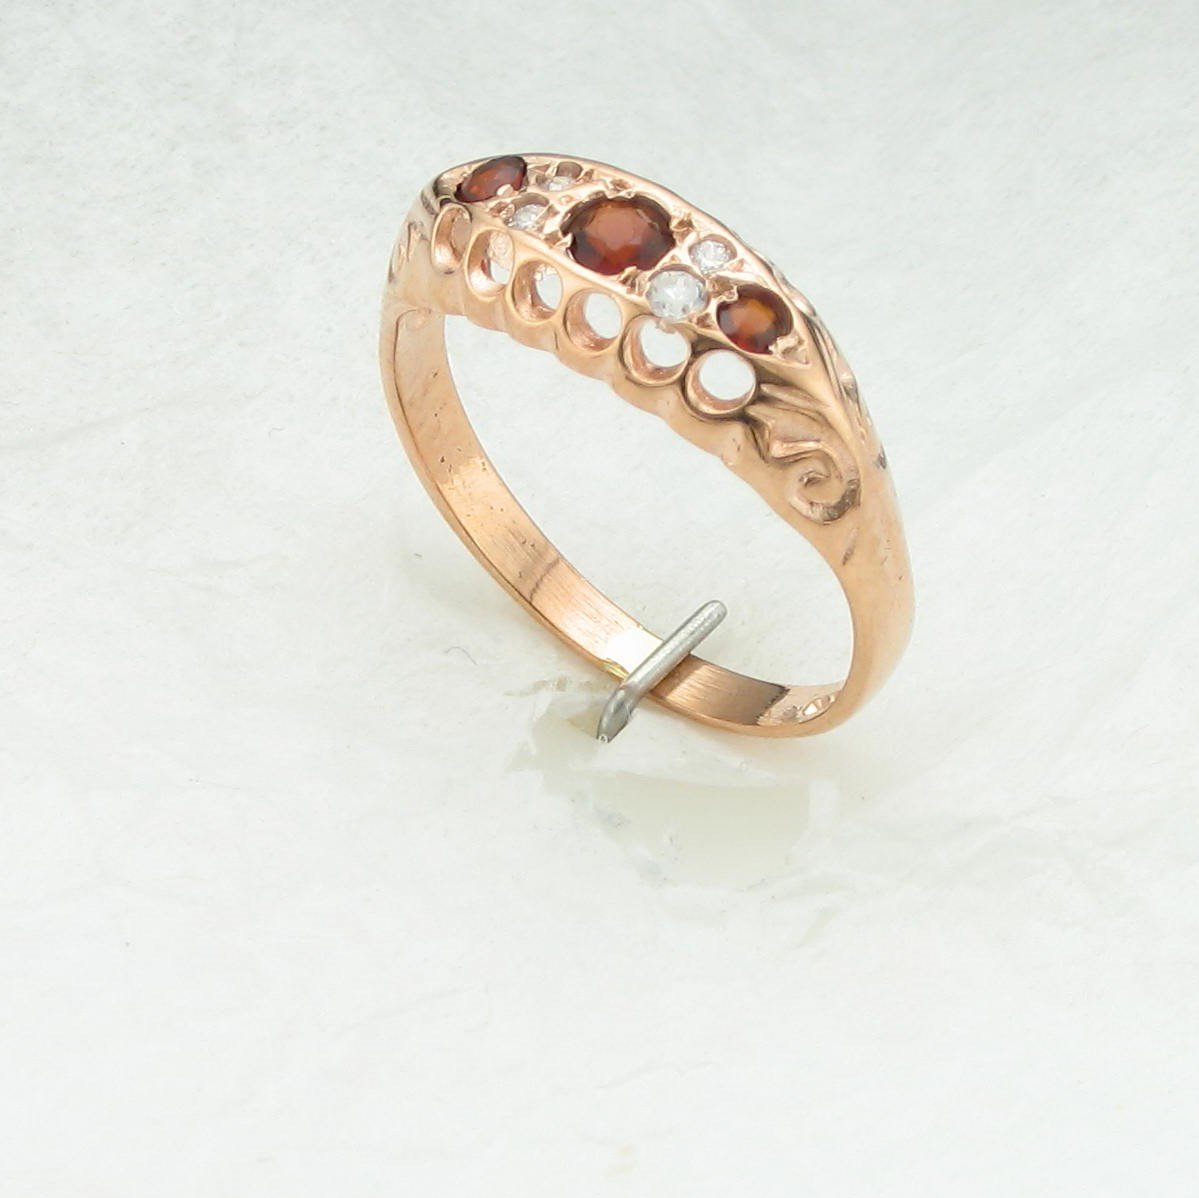 9K Rose Gold Garnet and Diamond Ring